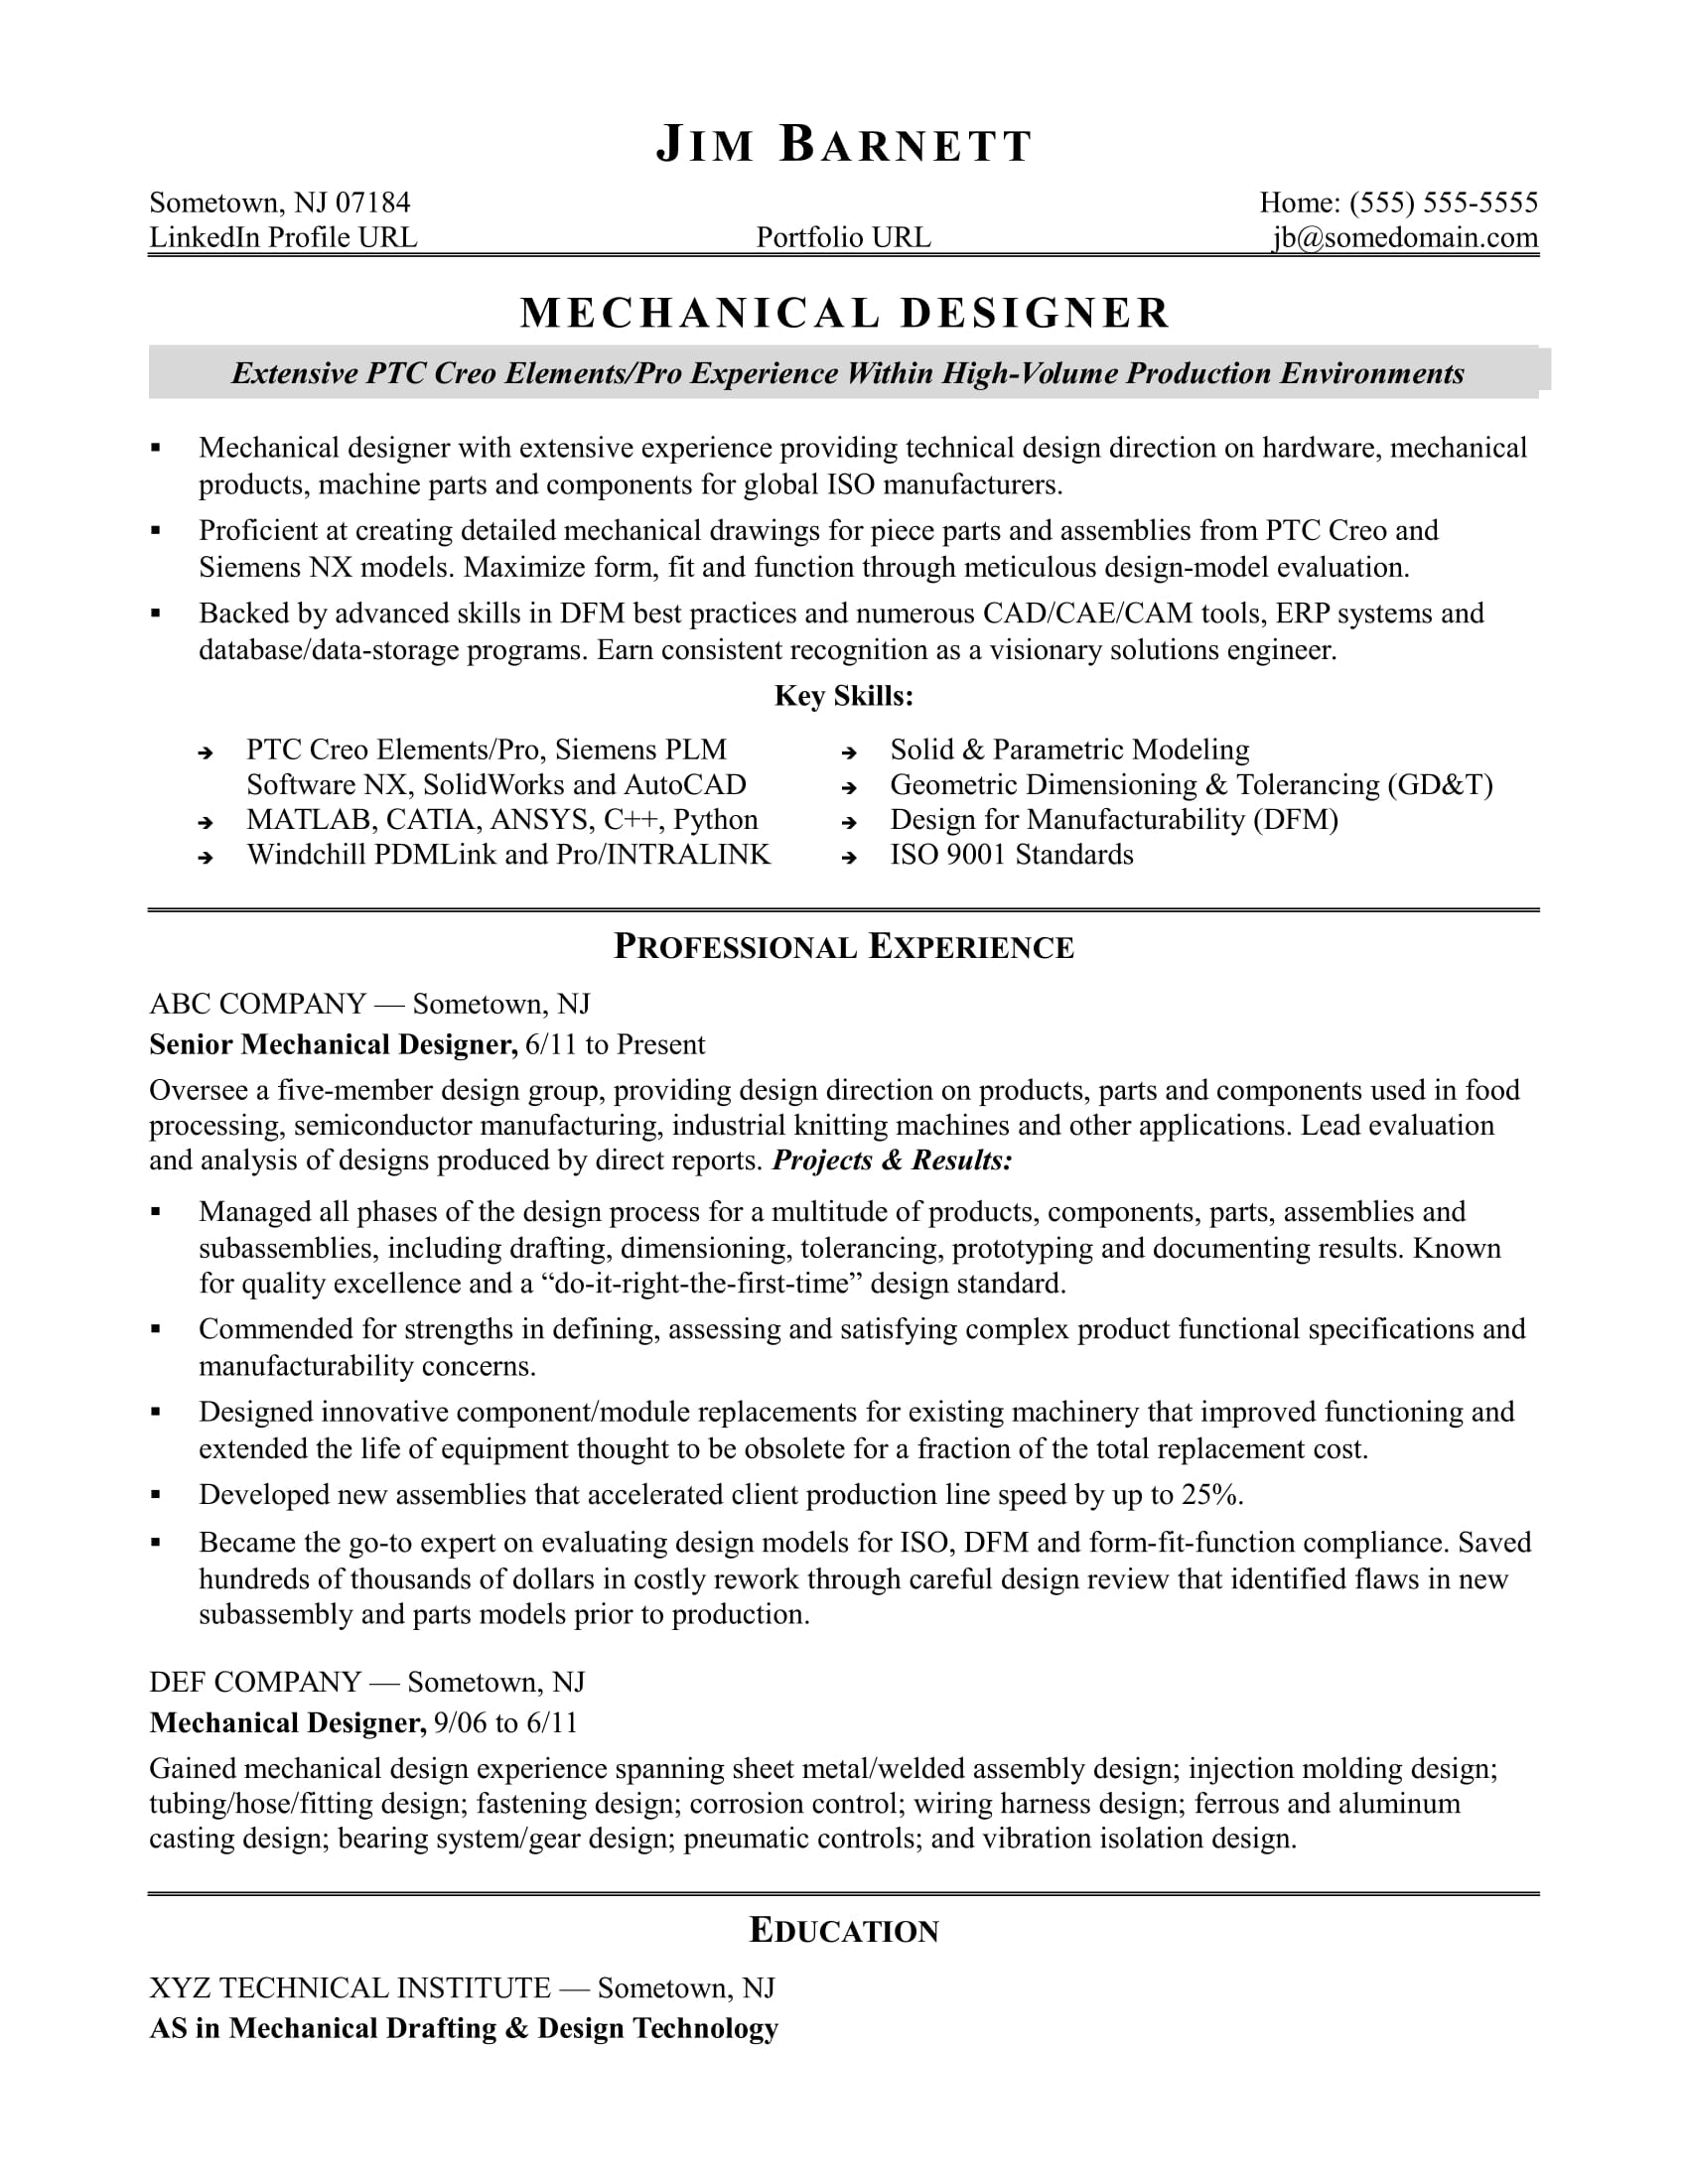 sample resume for an experienced mechanical designer monster of client services examples Resume Resume Of An Experienced Person